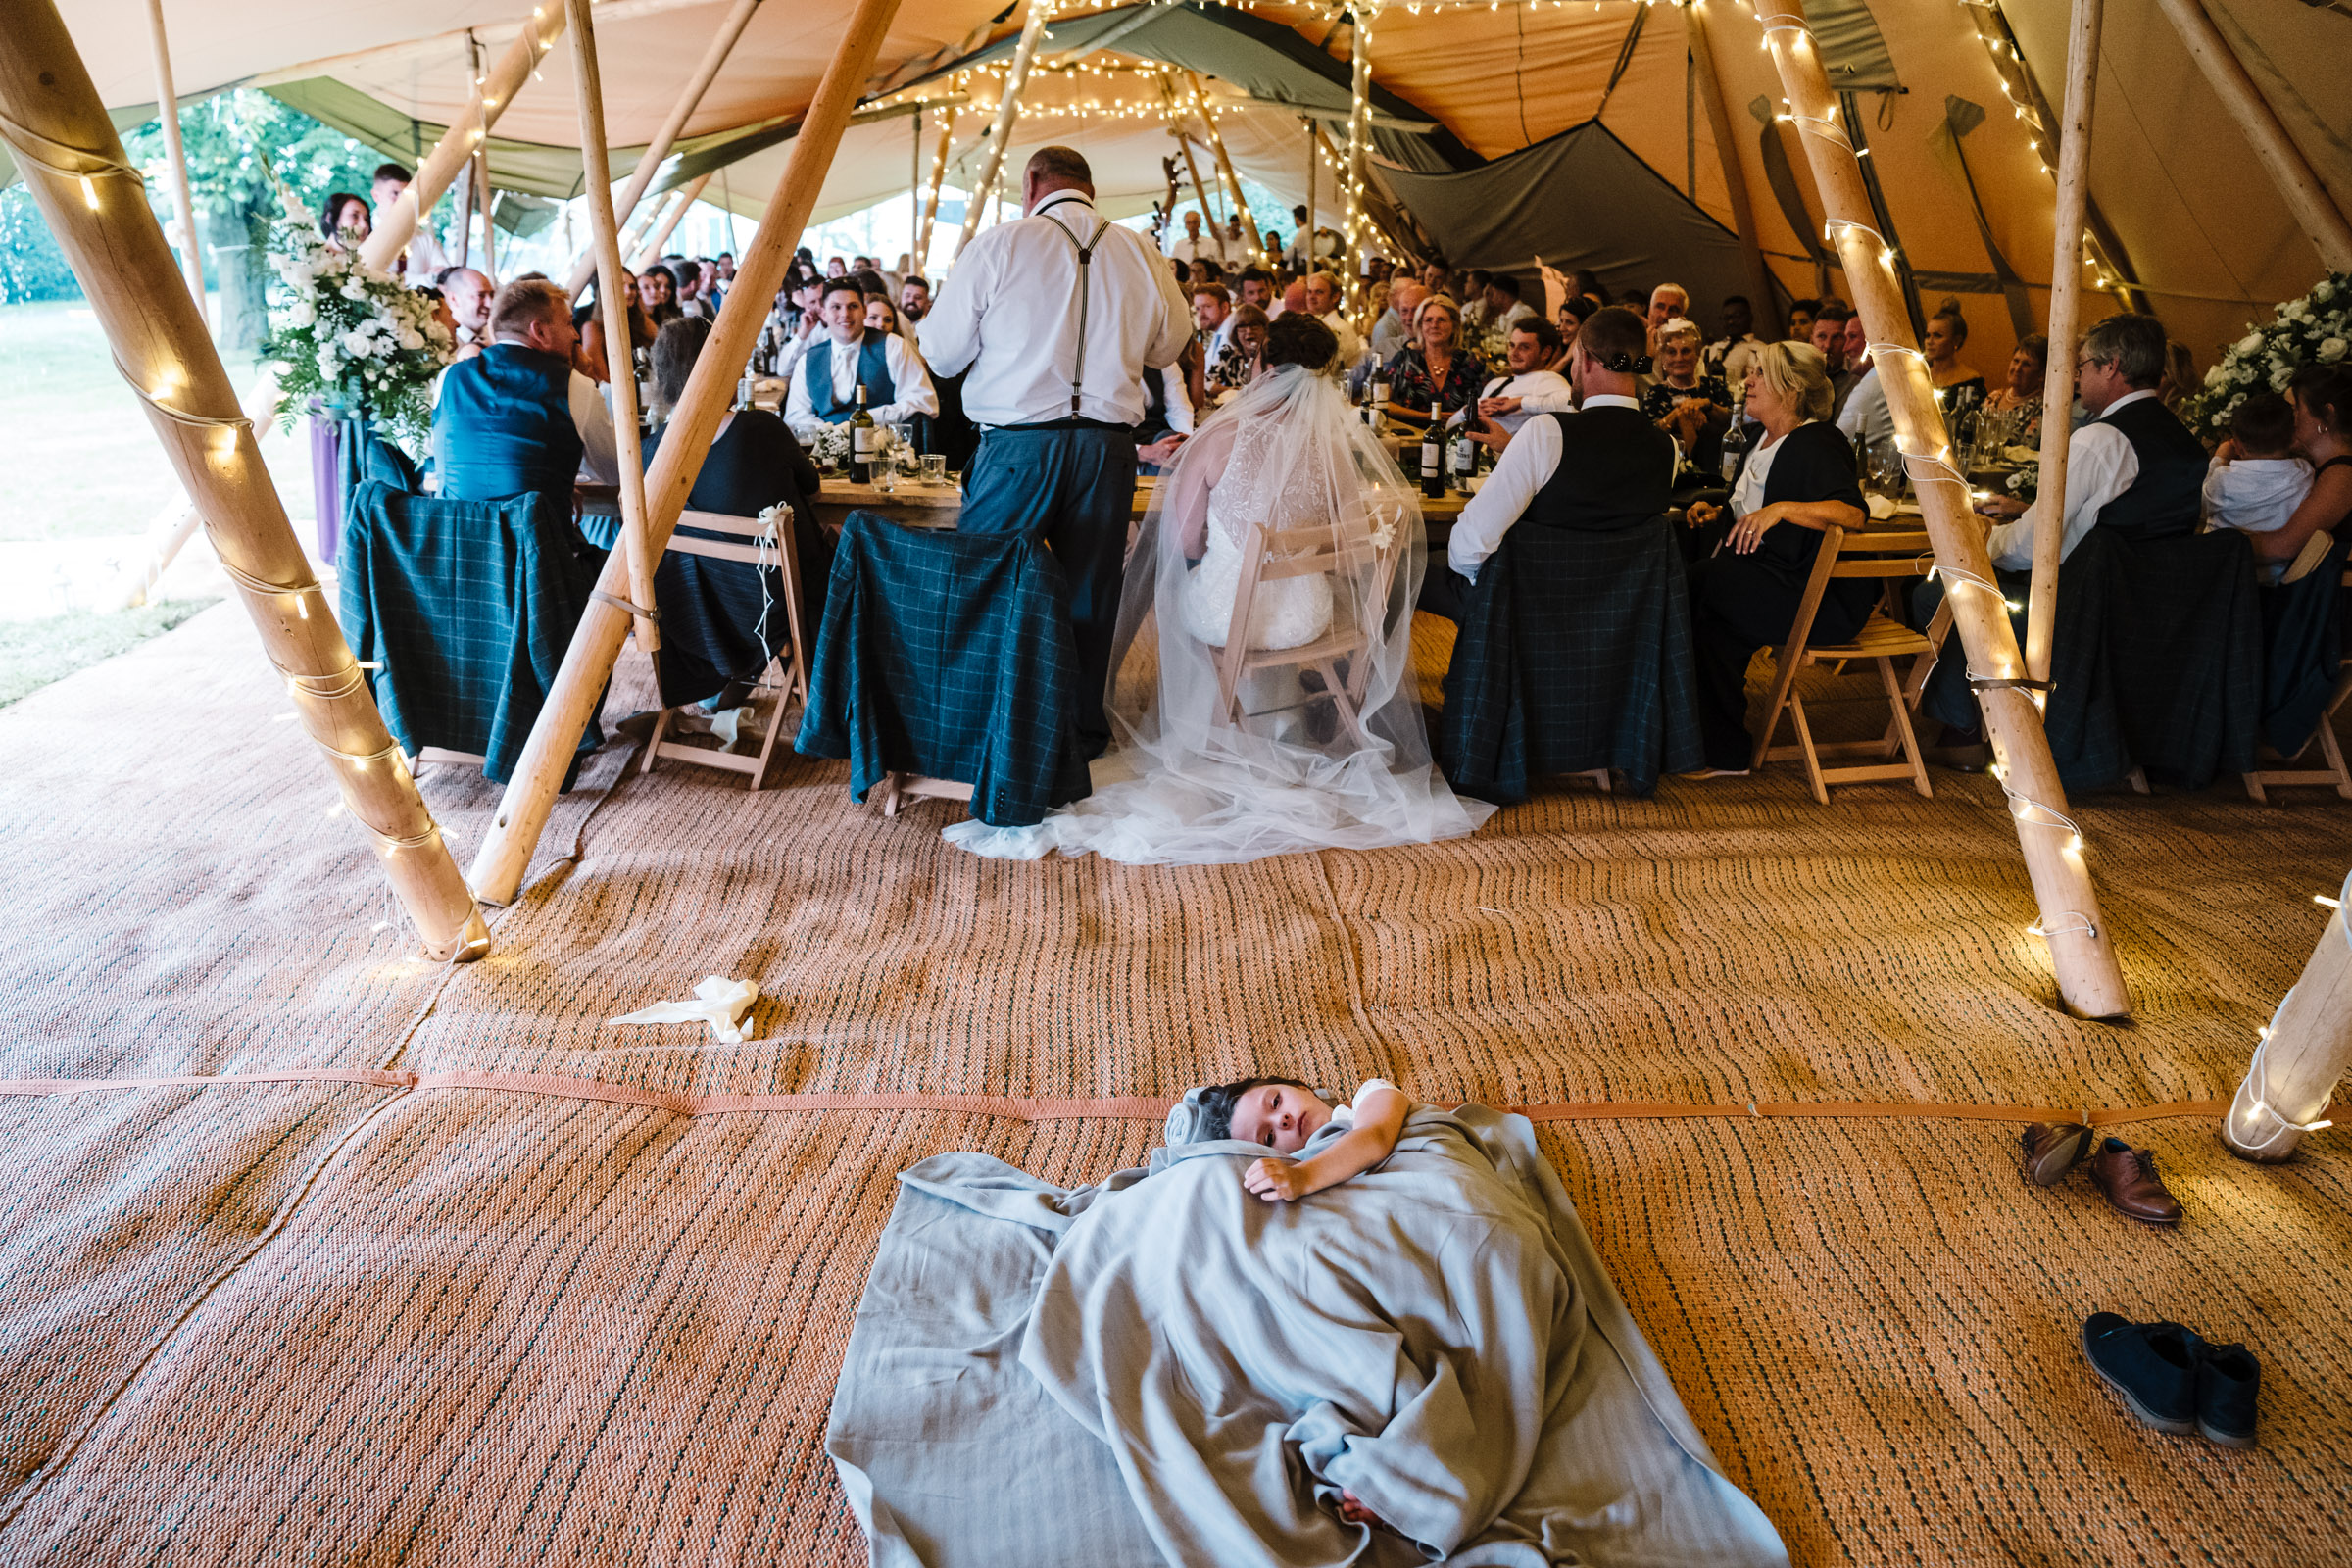 girls lying on the floor tucked up in a blanket during wedding breakfast